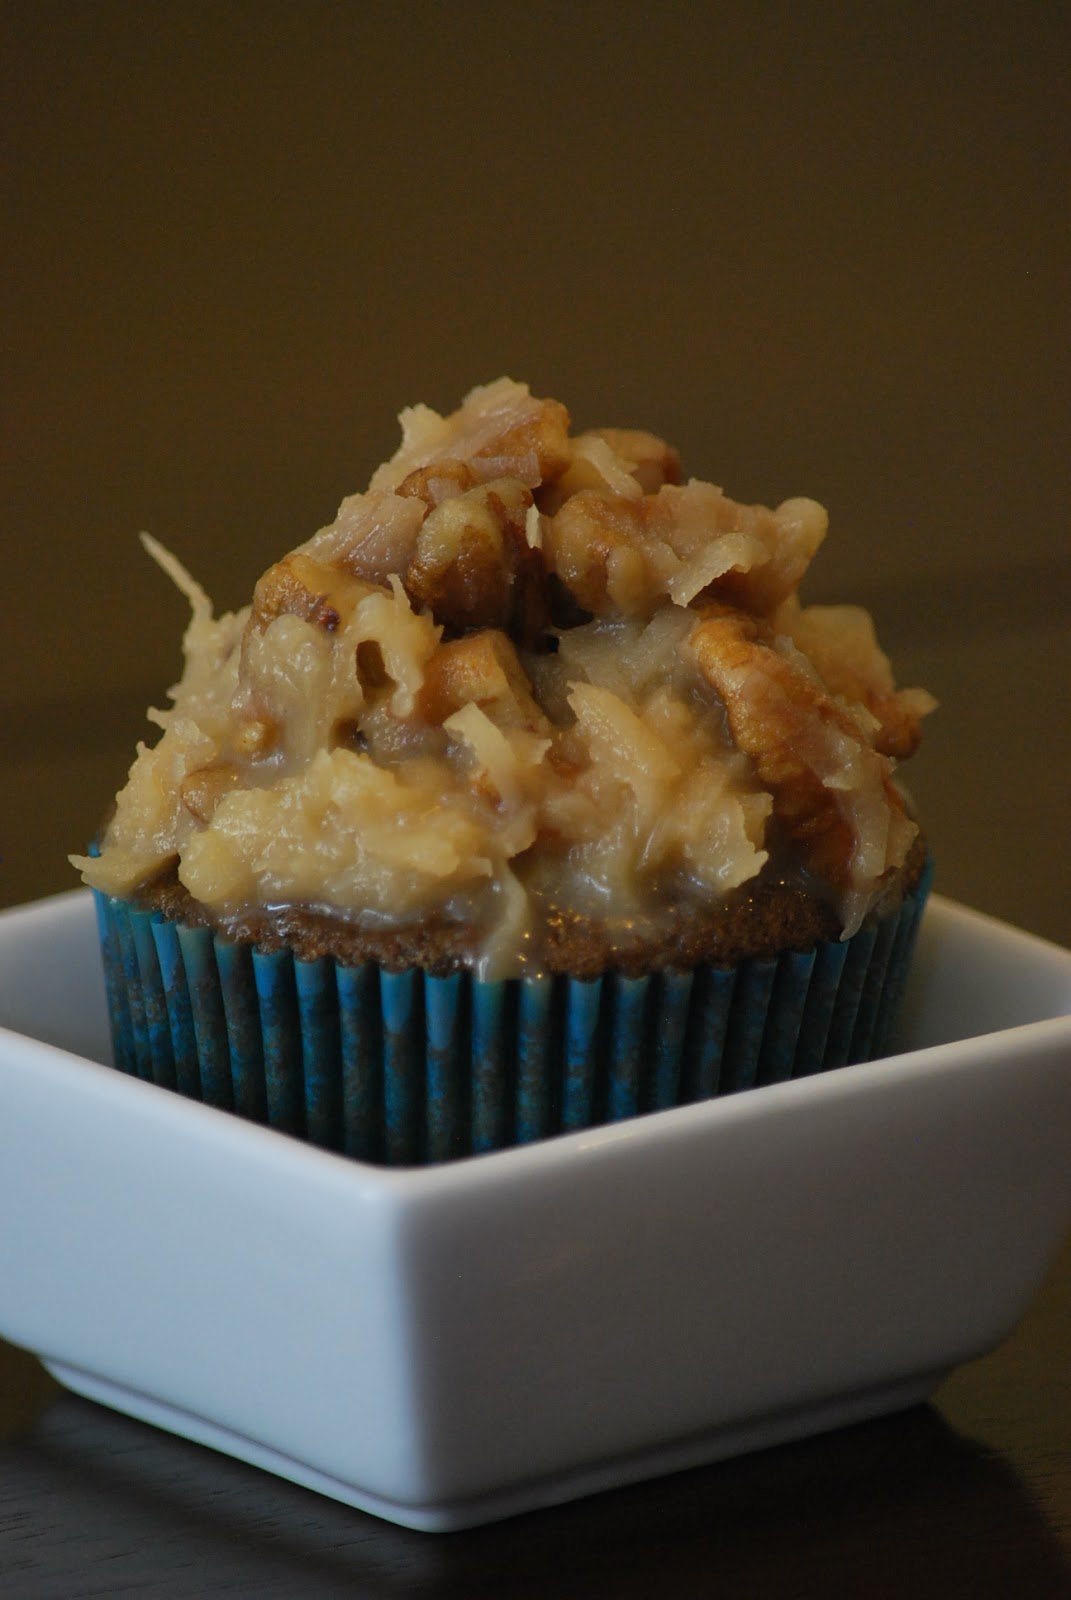 My story in recipes: German Chocolate Cupcakes